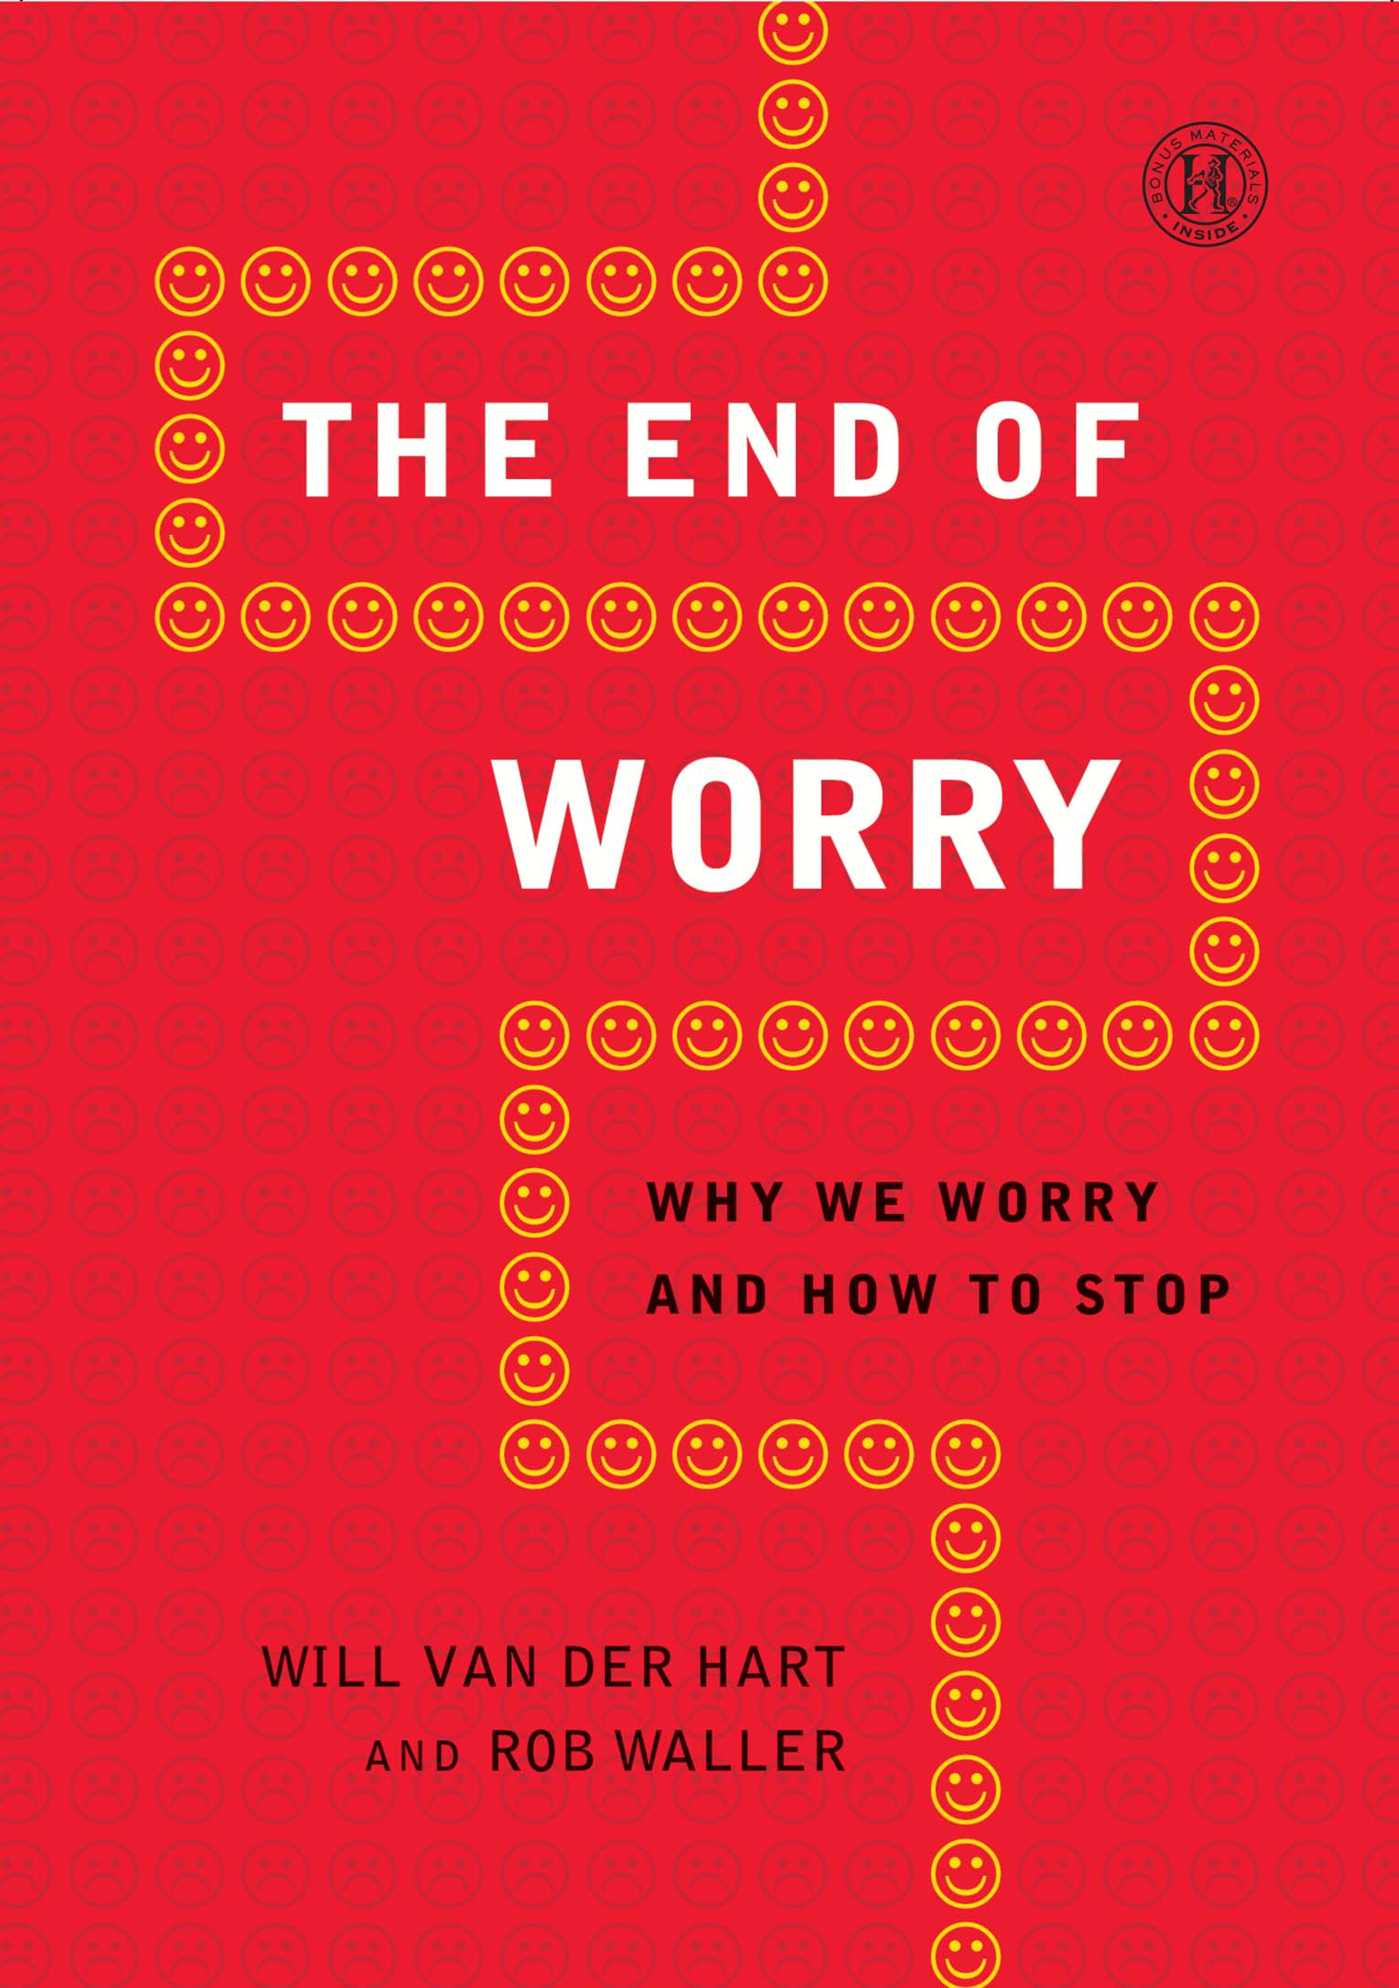 End-of-worry-9781451682809_hr